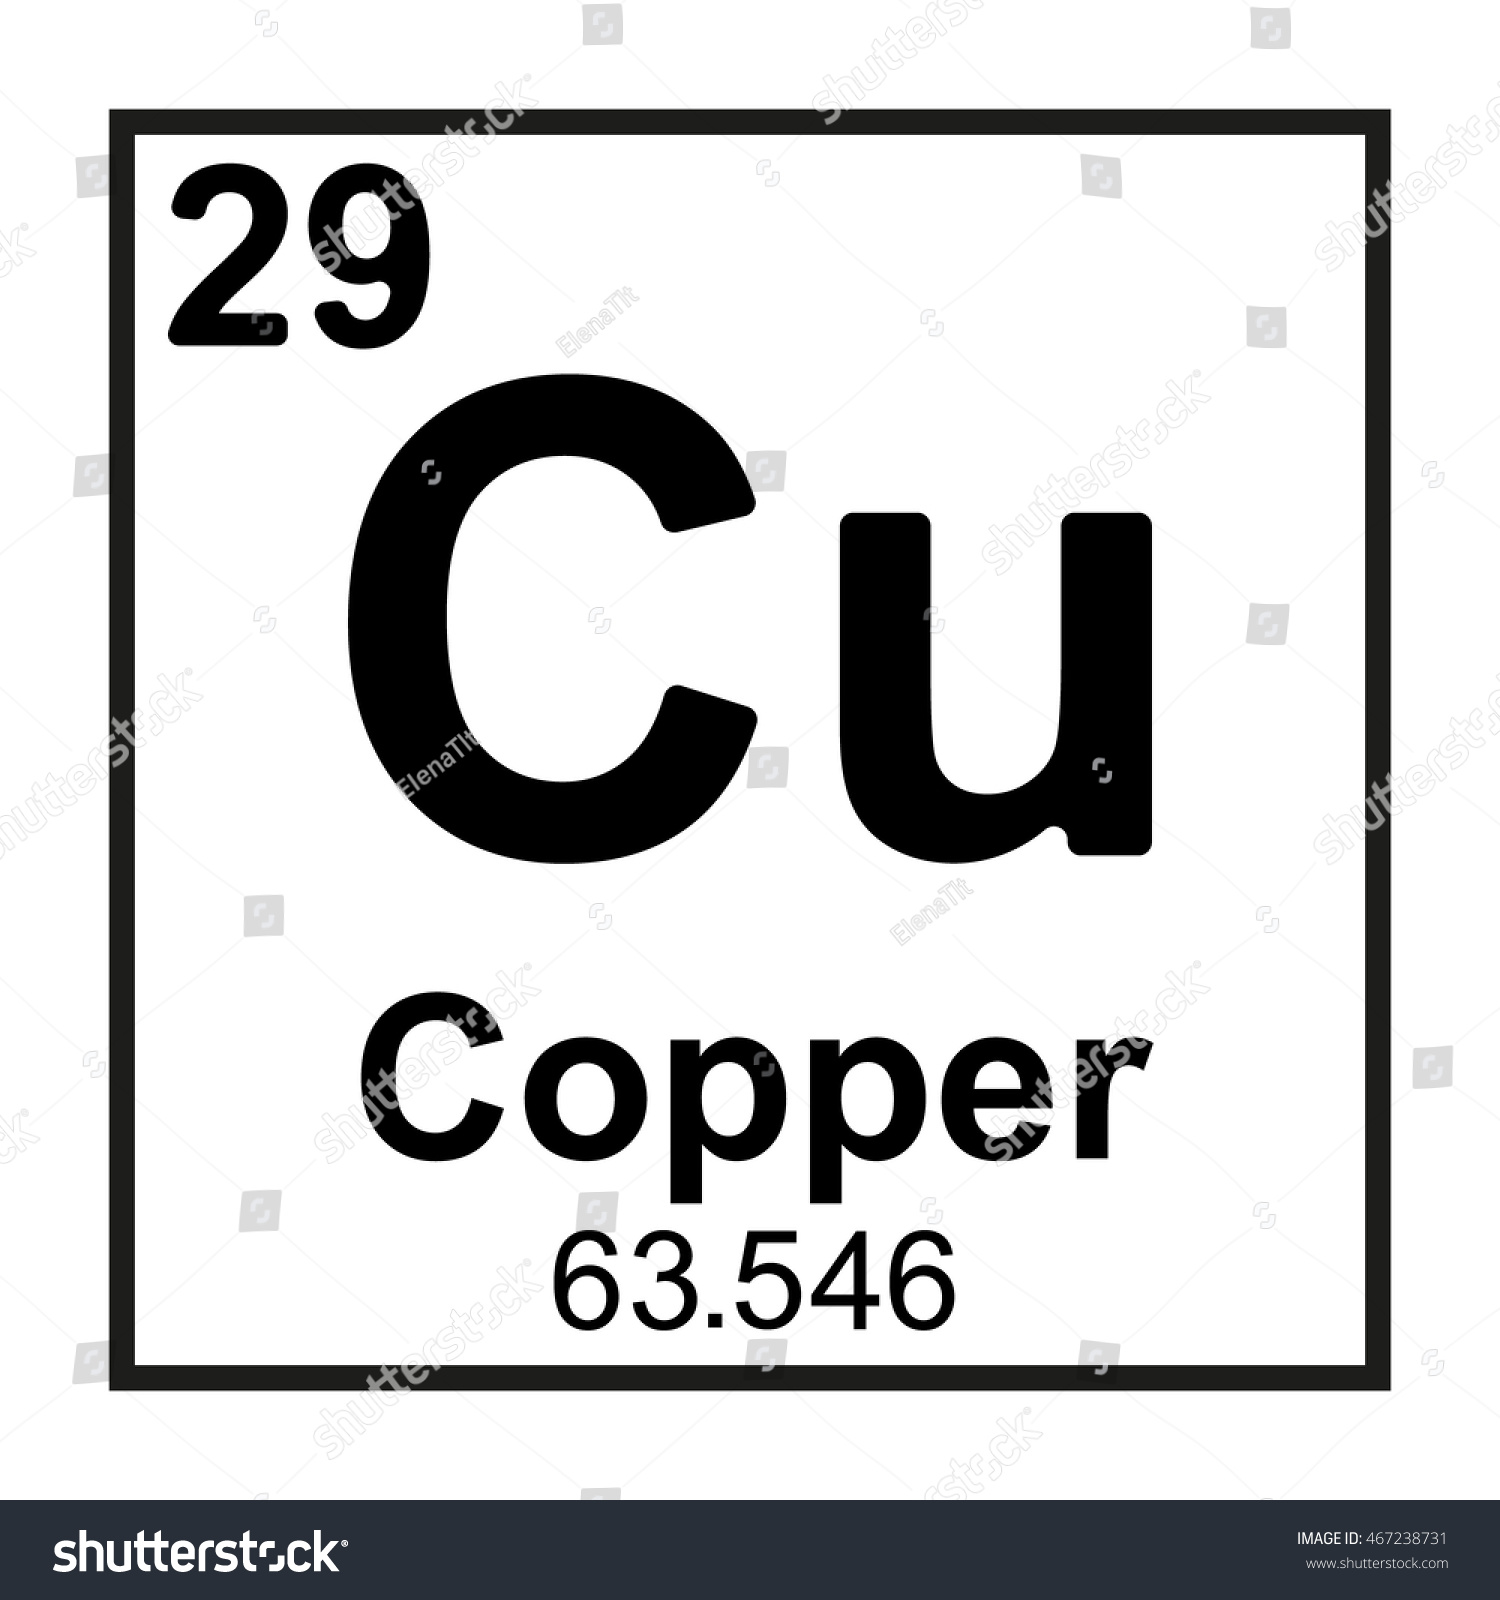 Periodic table element copper stock vector 467238731 shutterstock periodic table element copper gamestrikefo Gallery